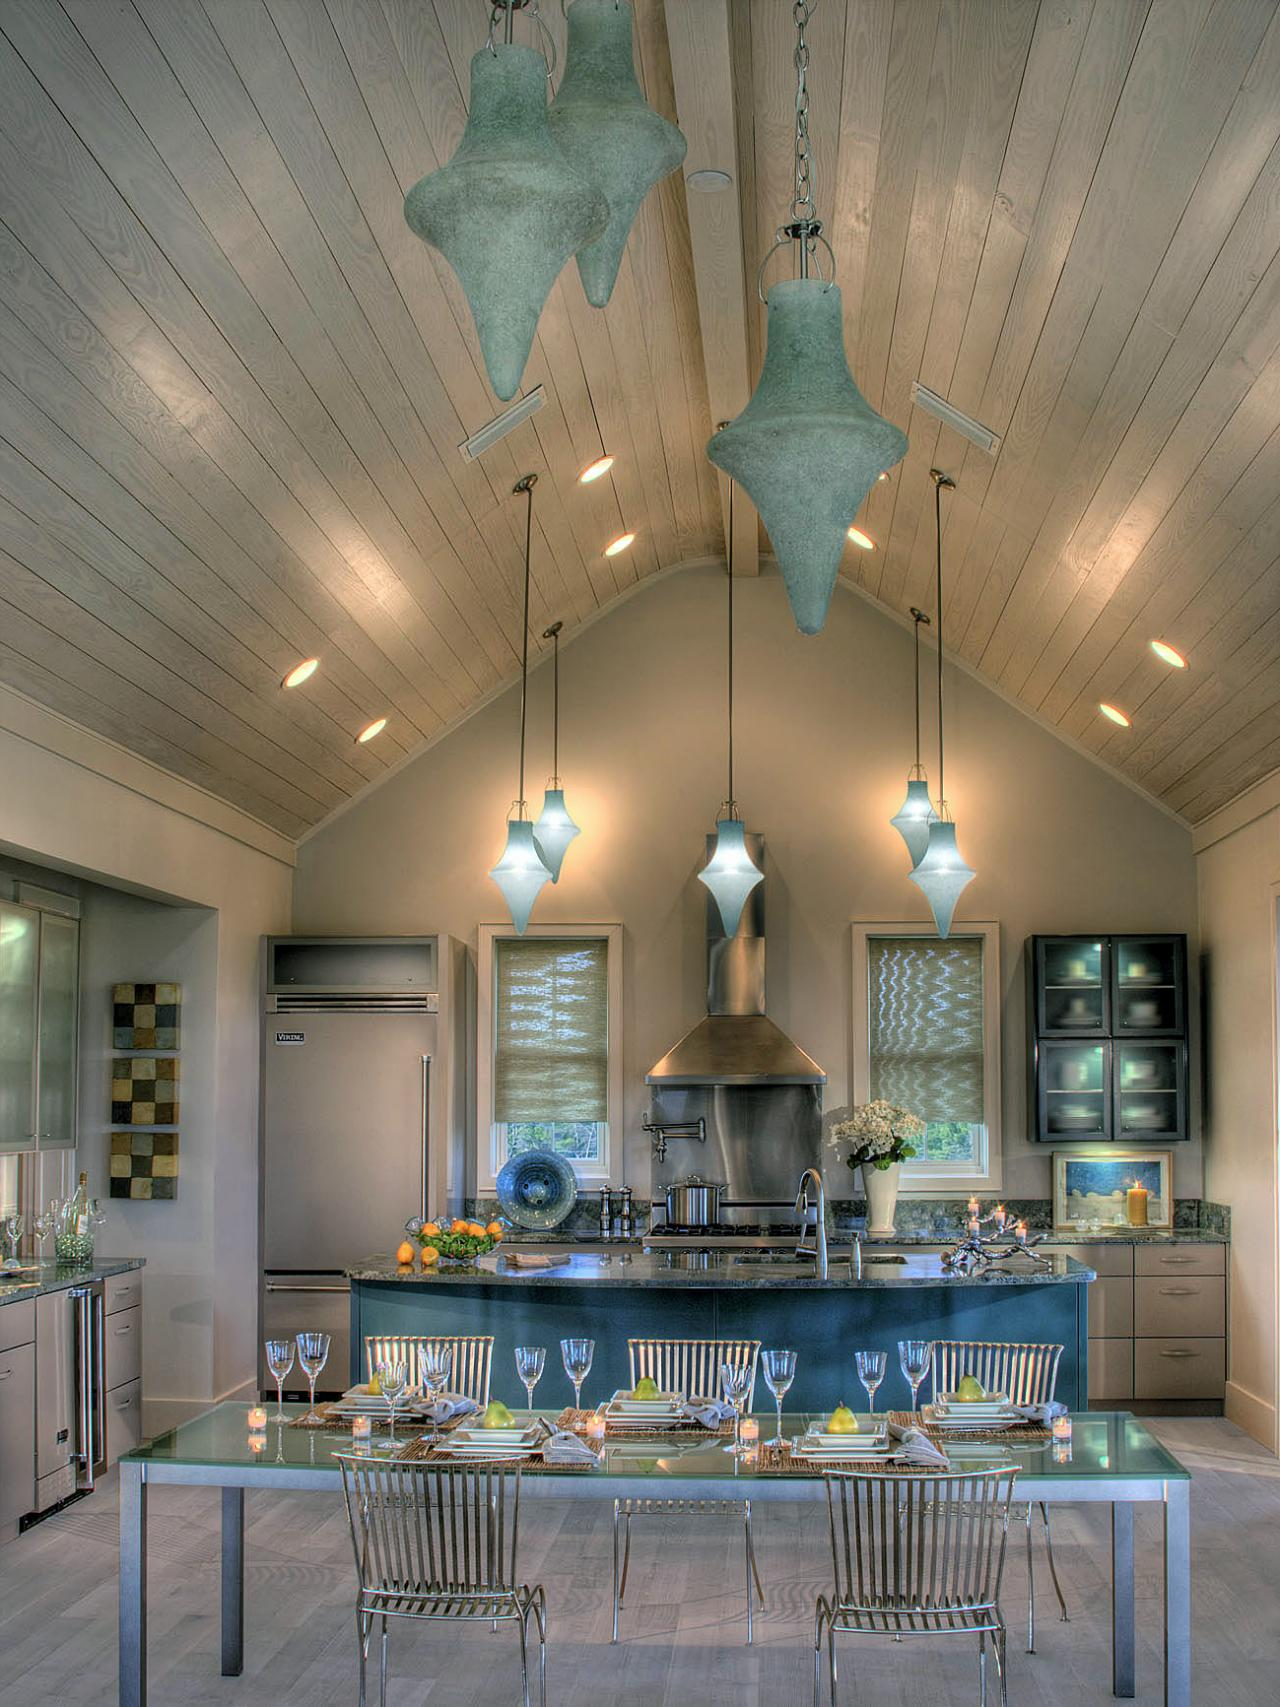 Trendy Paint Colors for Your Kitchen7